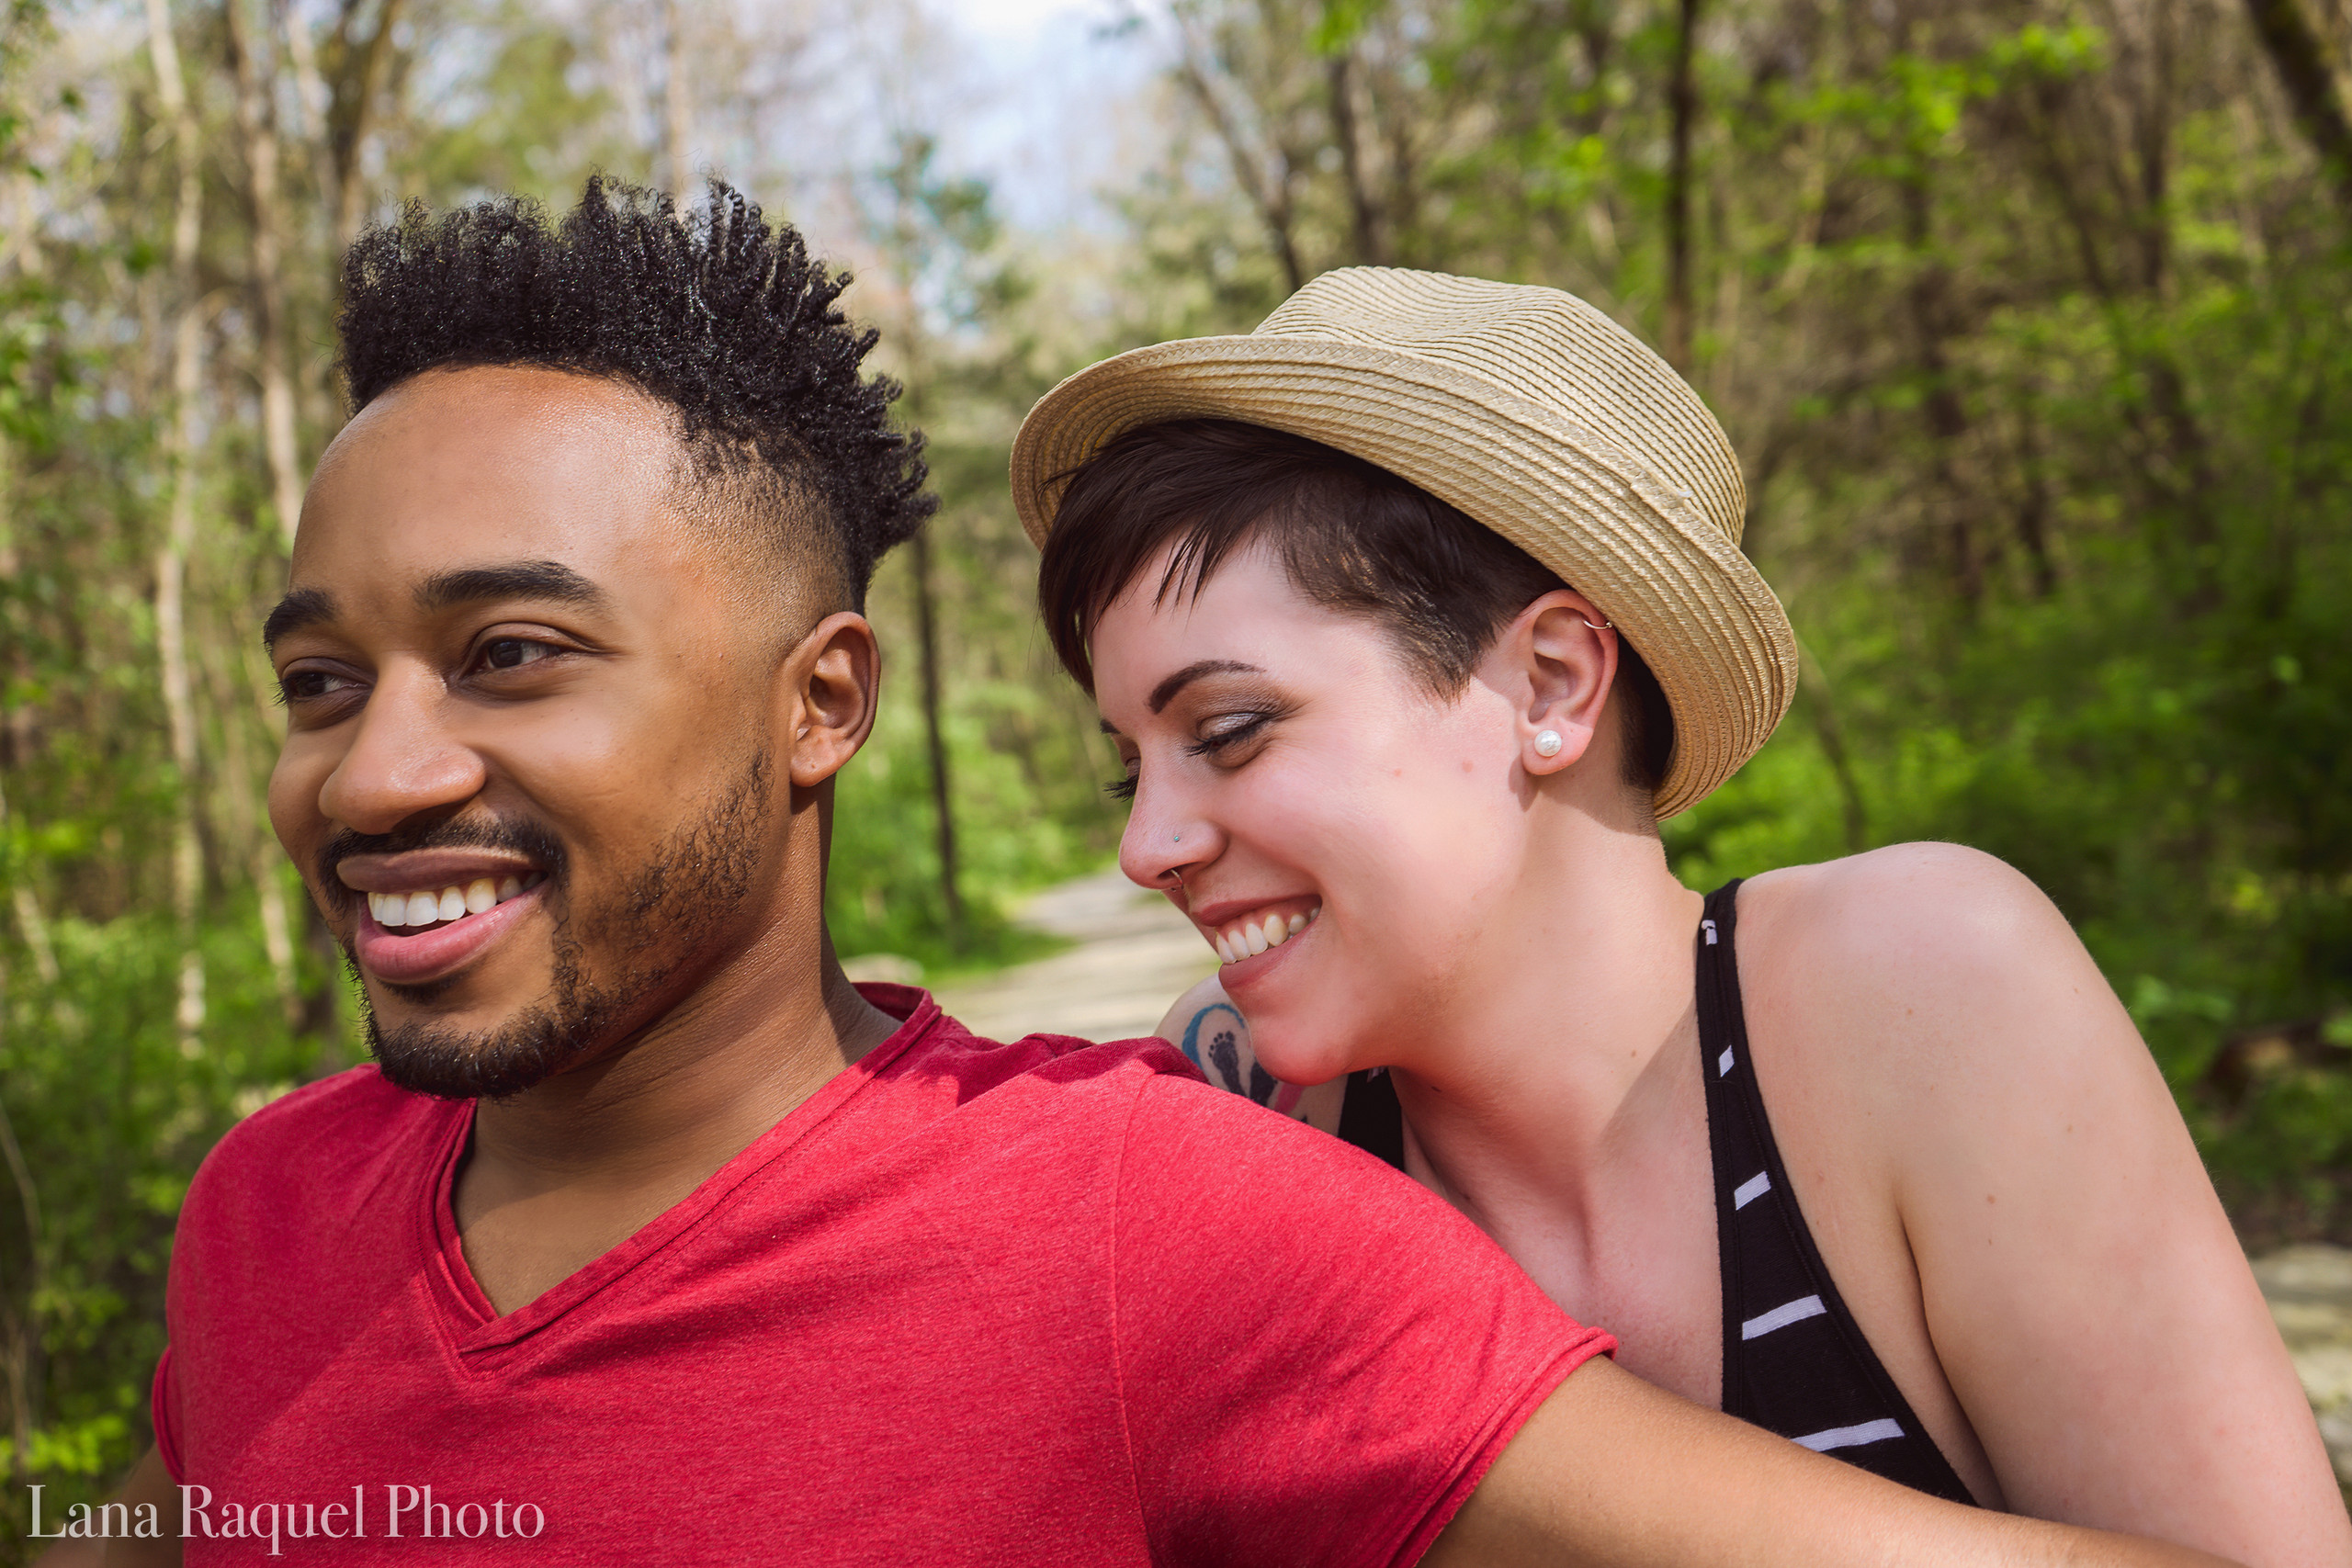 Interracial Couple Laughing in the Woods